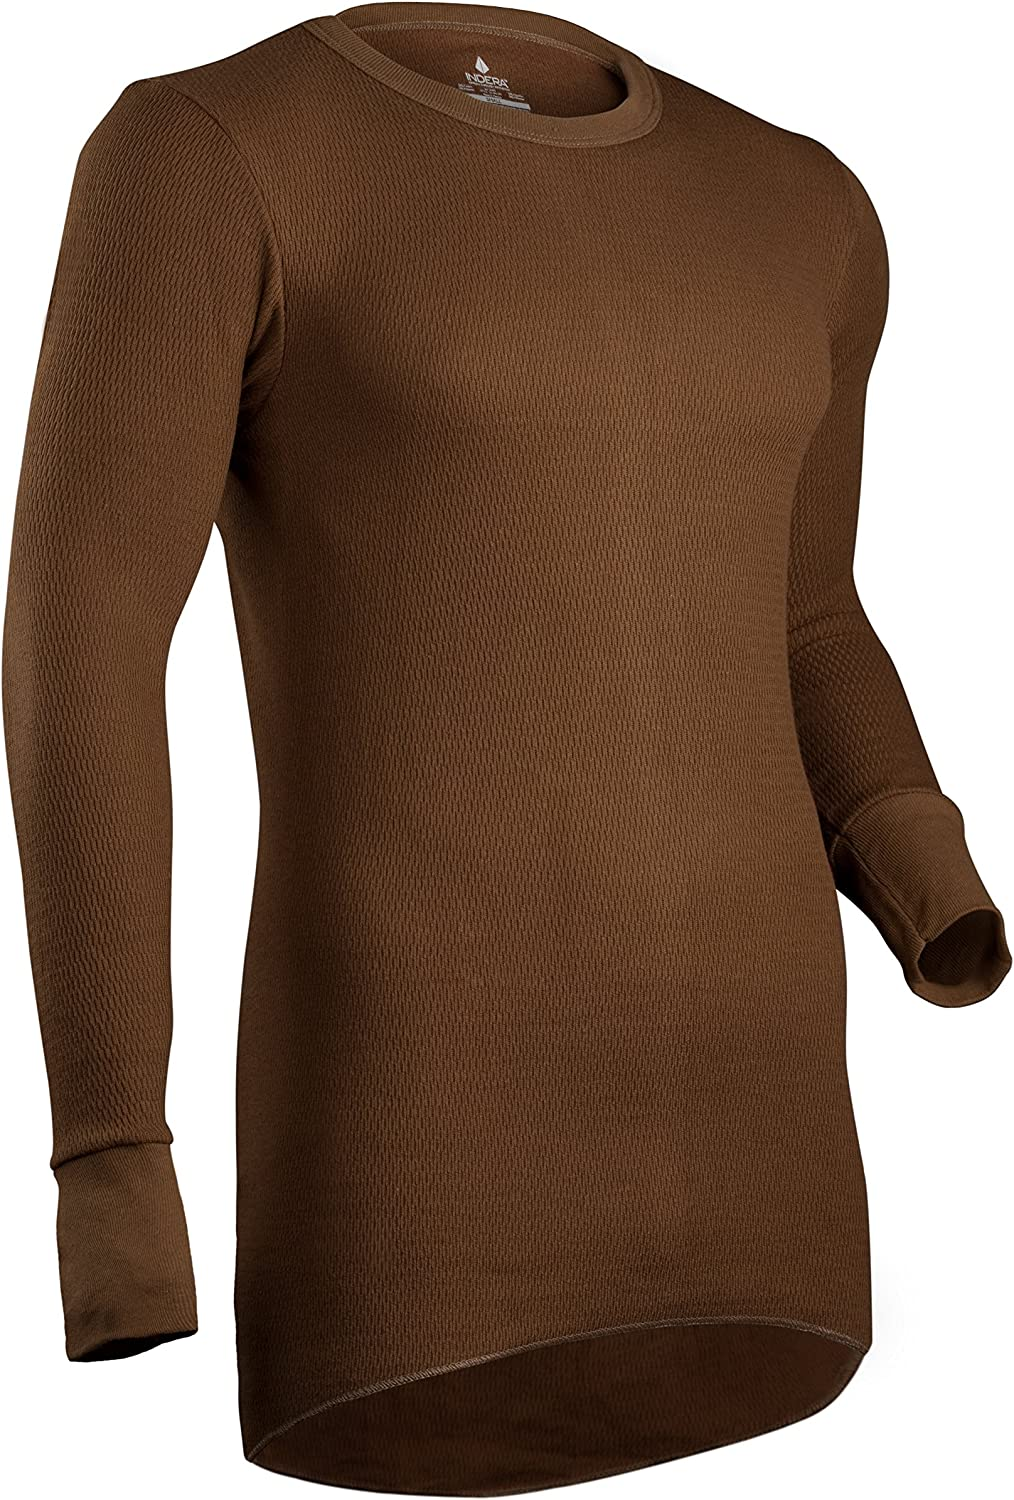 Indera Men's Icetex Cotton Outside/Fleeced Polyester with Silvadur Inside Top